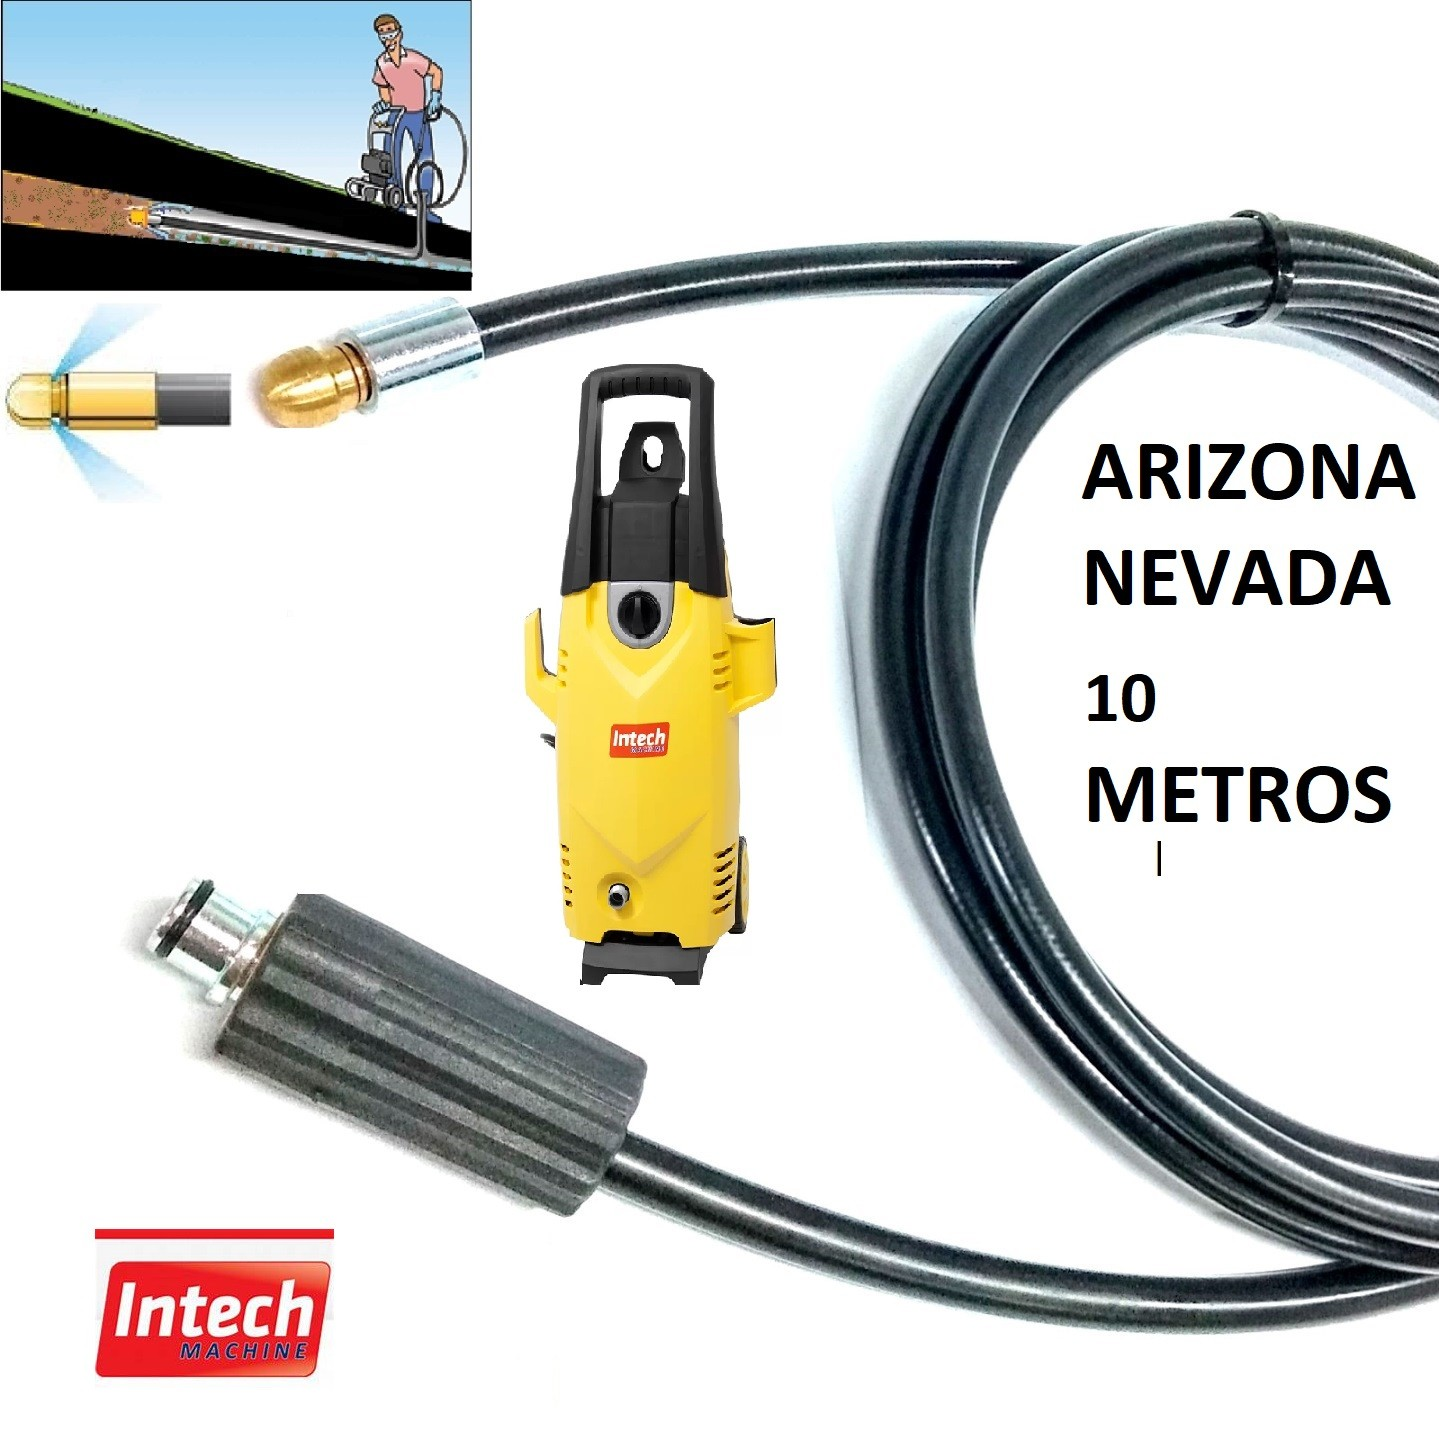 Mangueira Desentupidora Esgoto 10 Metros ARIZONA,NEVADA Intech Machine